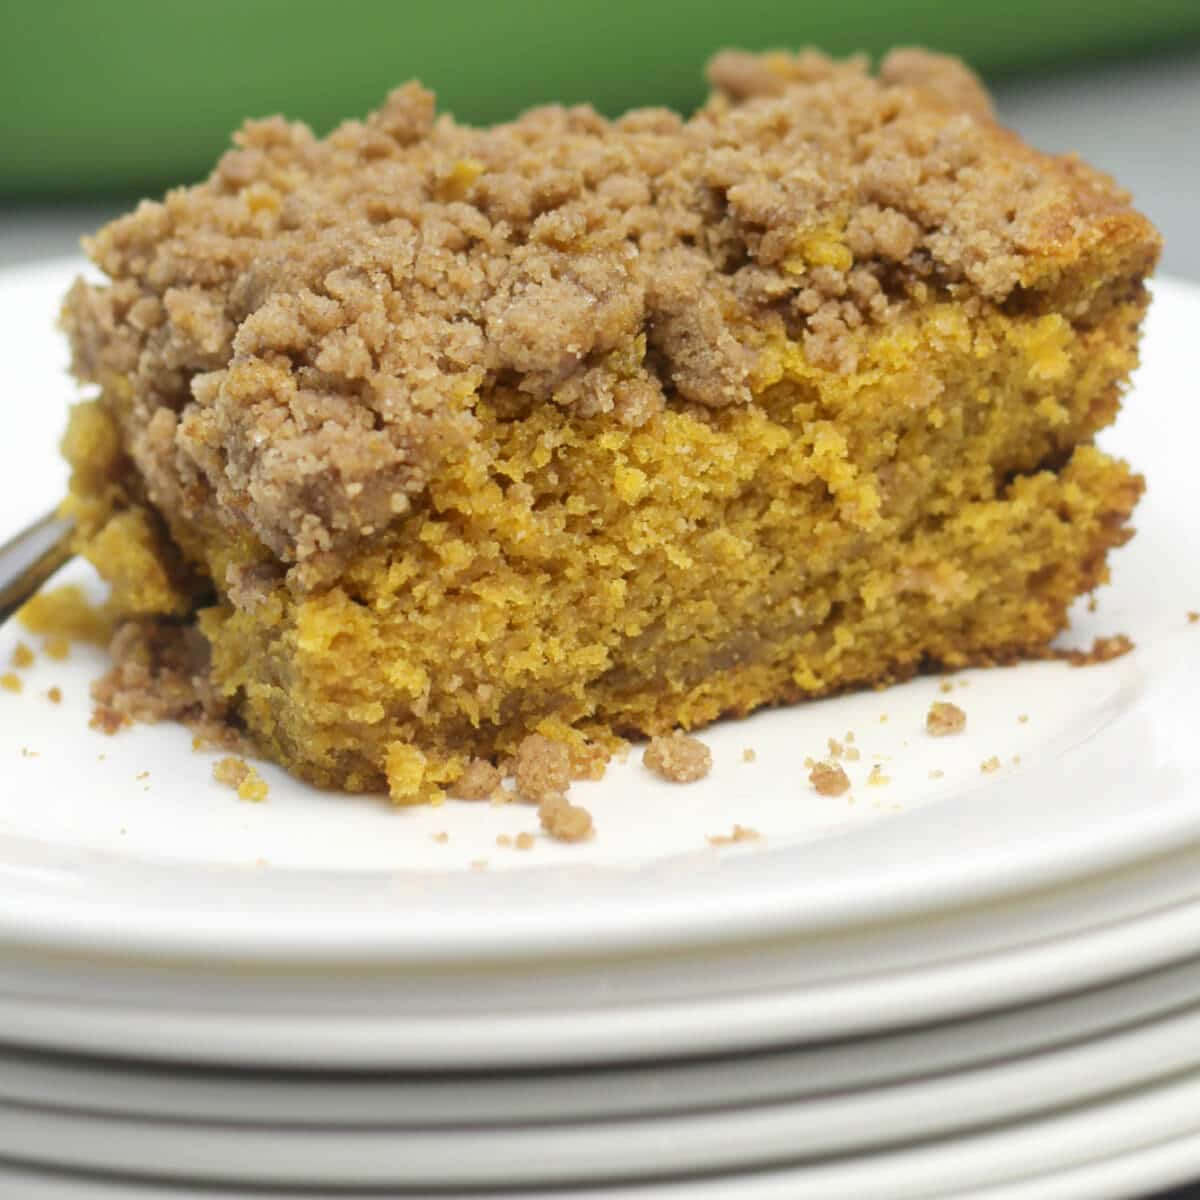 A slice of pumpkin crumb cake on a white plate.